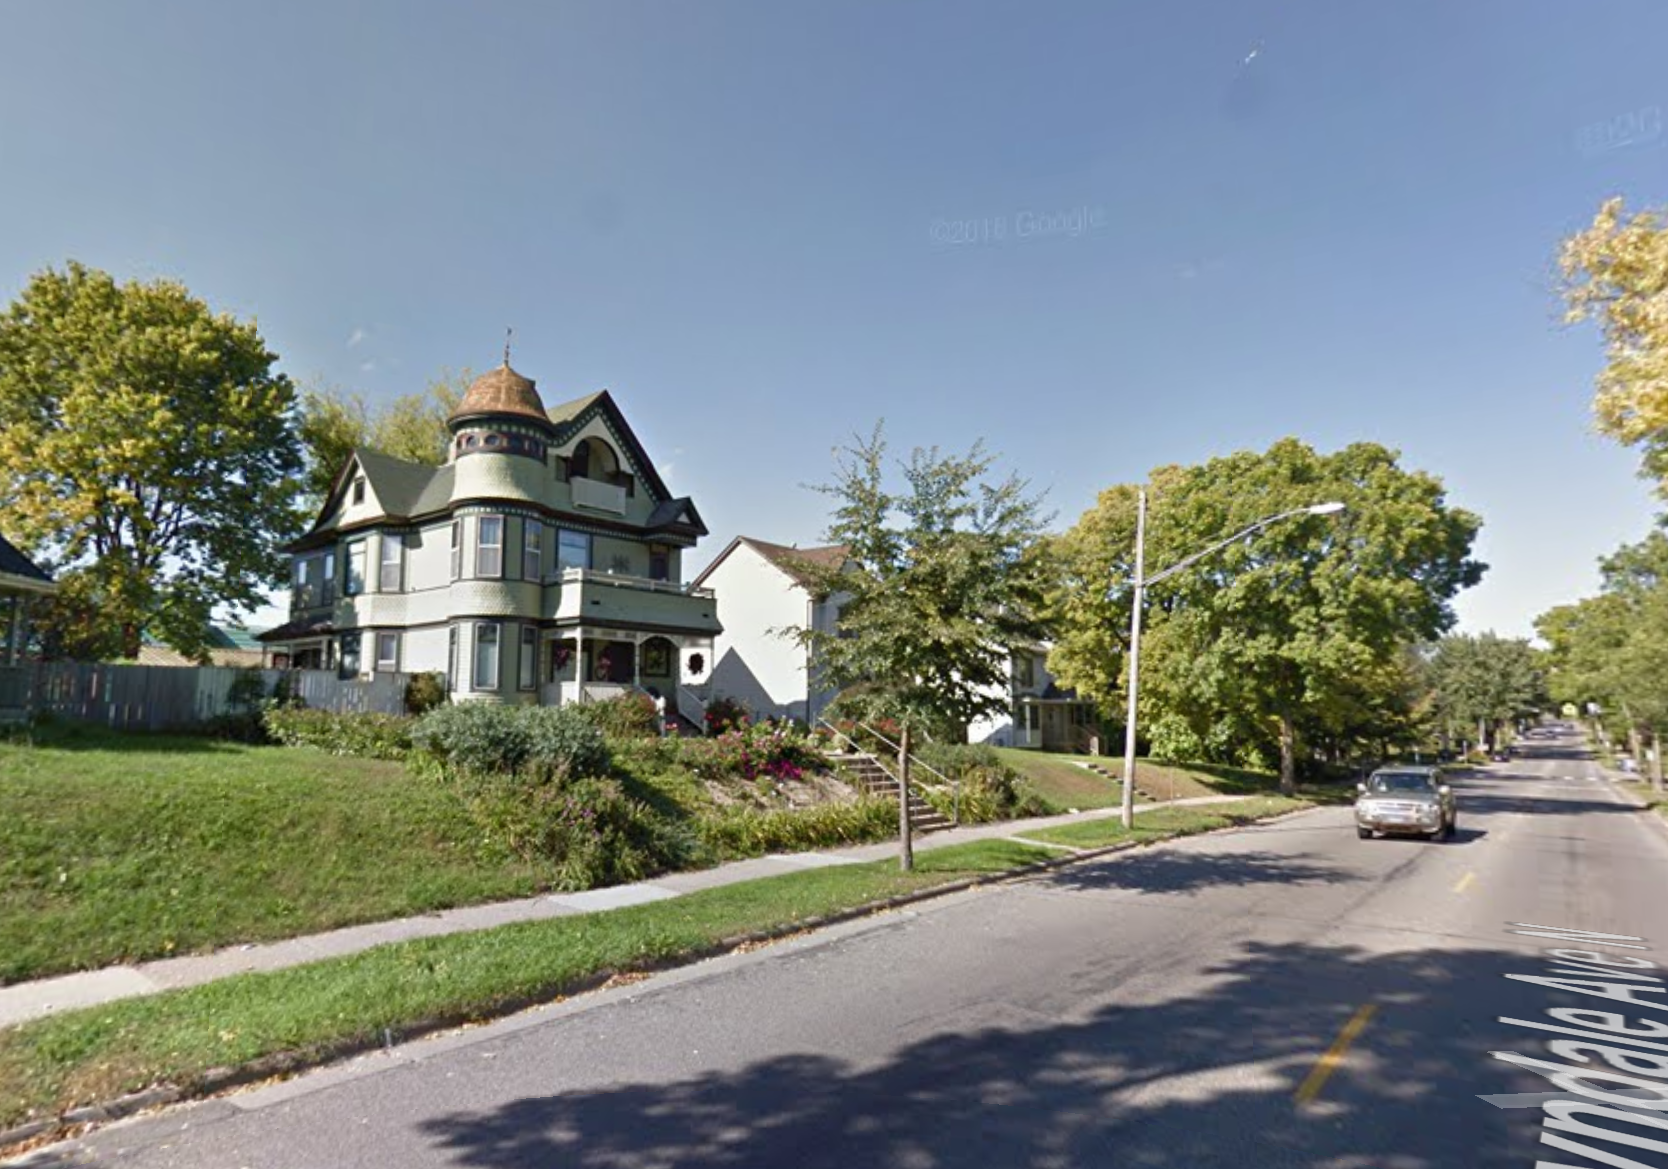 One of the many beautiful homes in North Minneapolis worth preserving